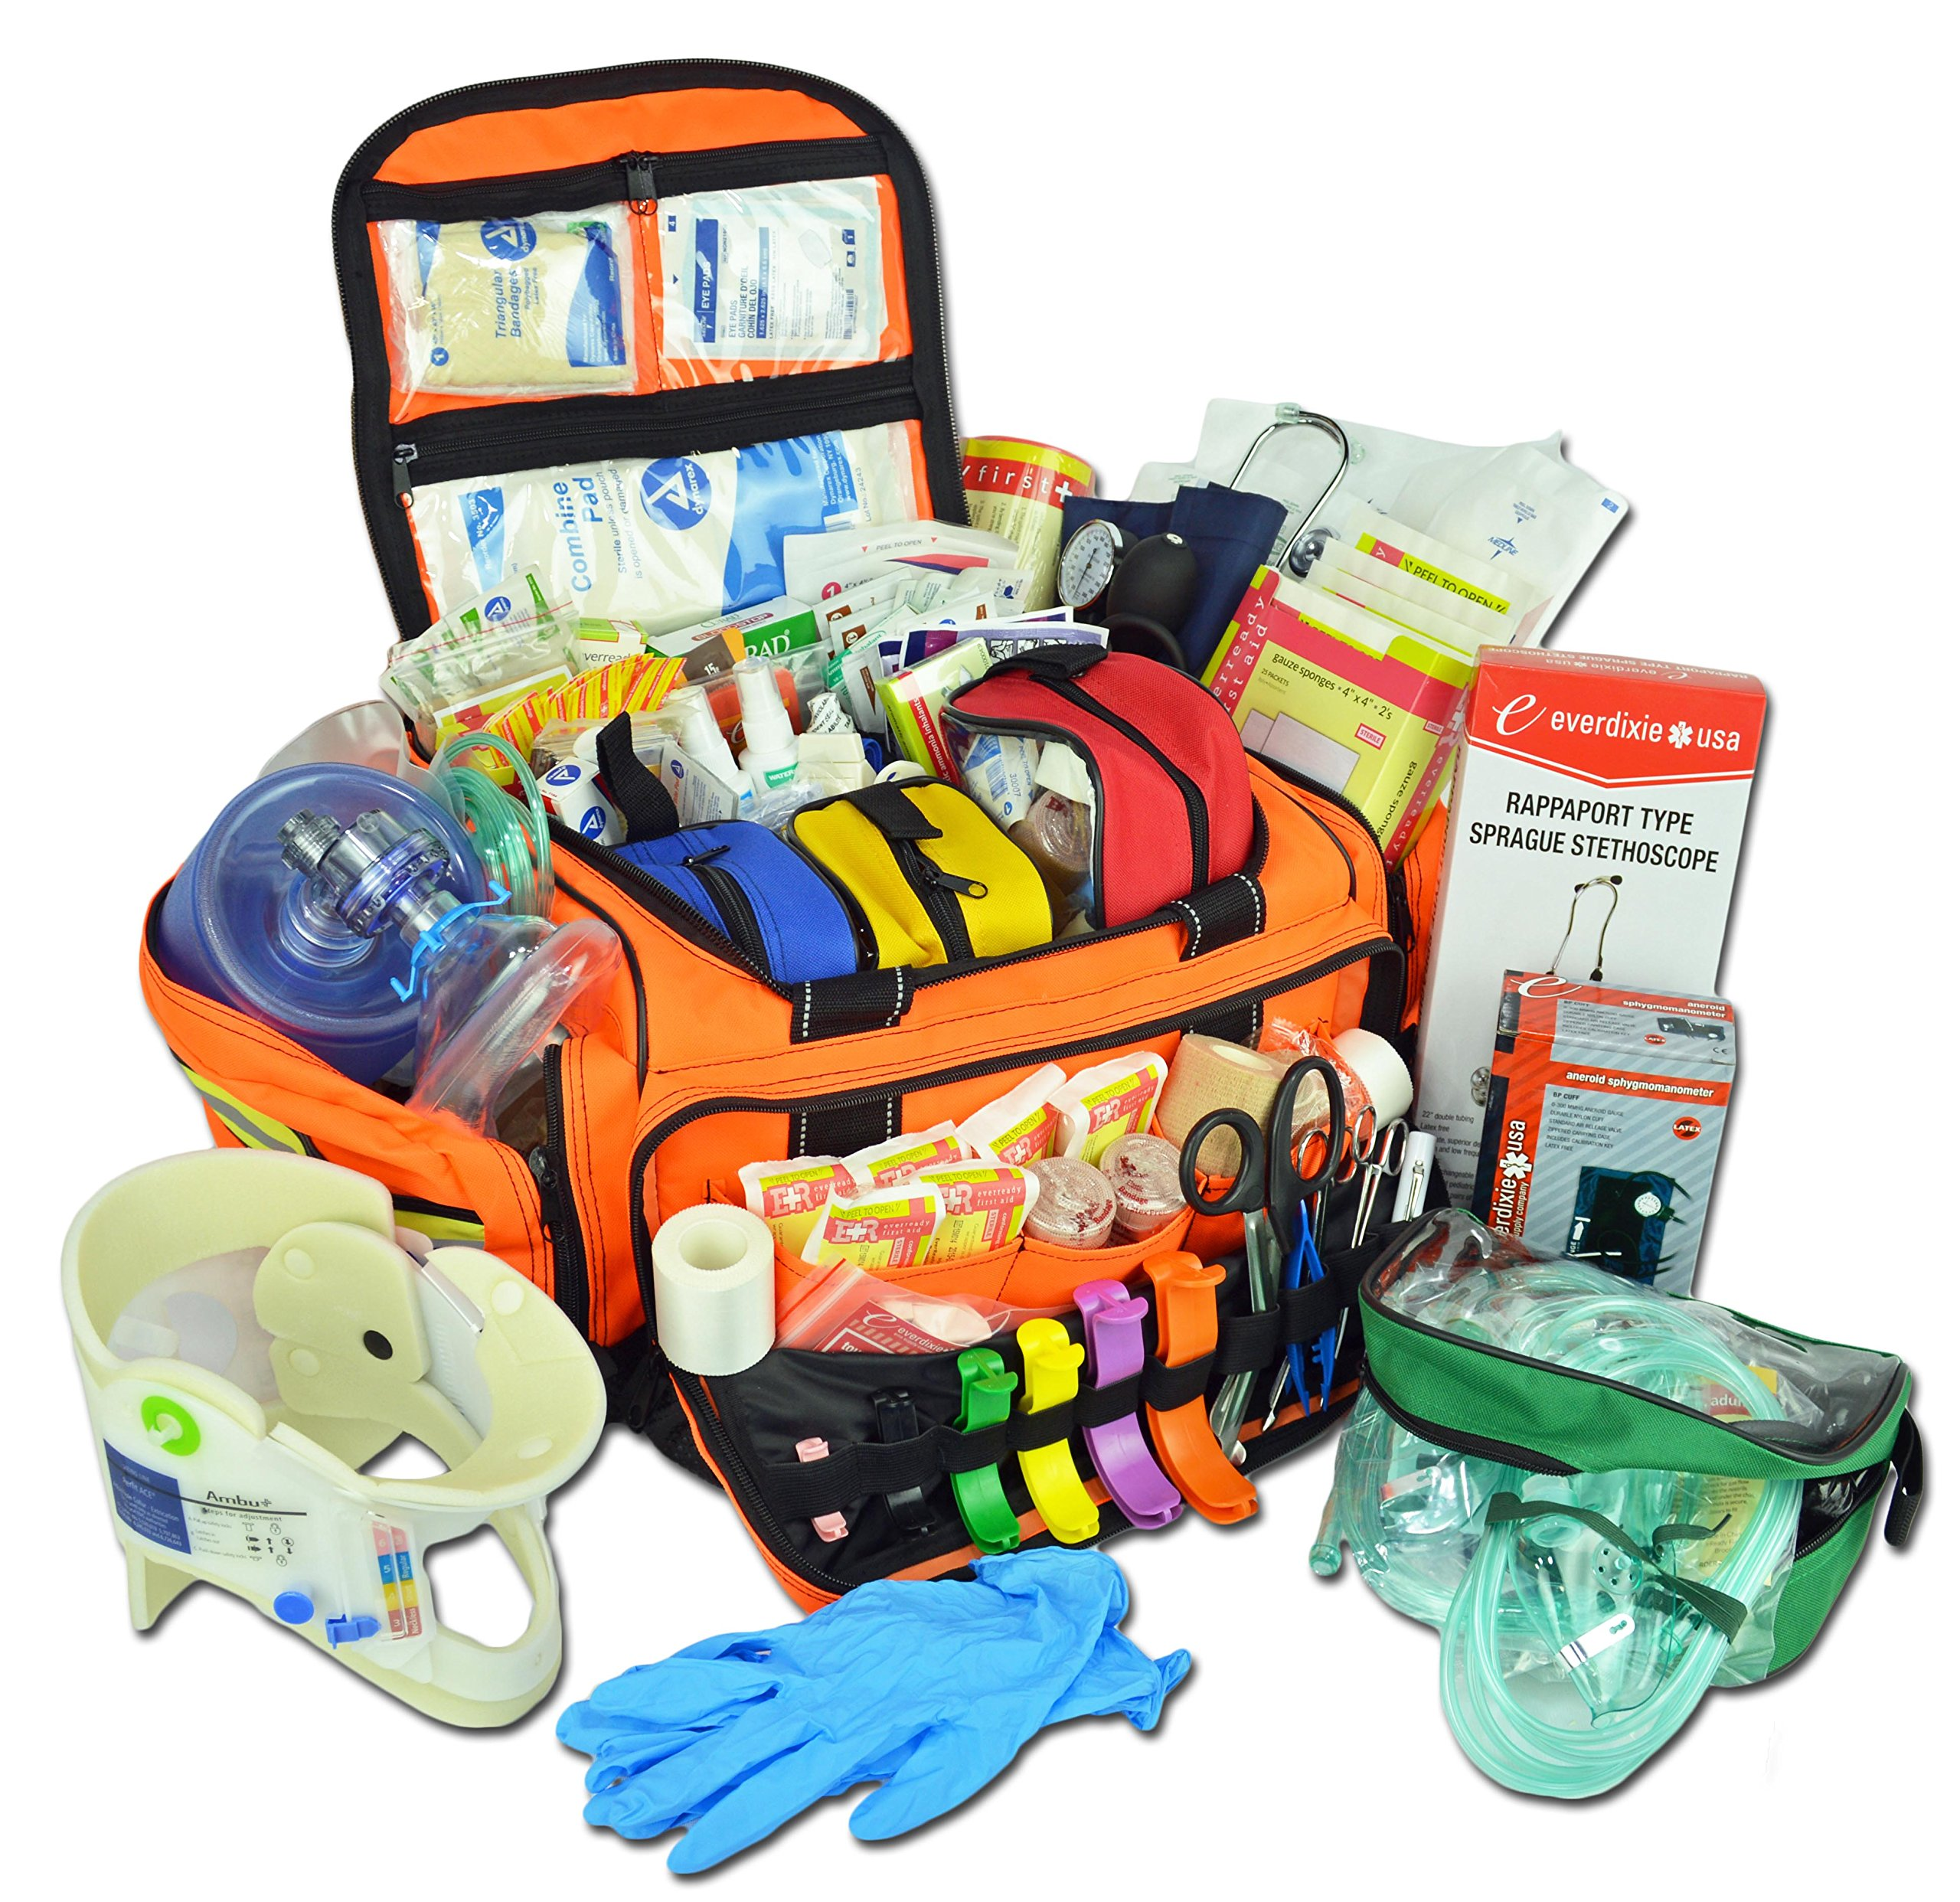 Lightning X Extra Large Medic First Responder EMT Trauma Bag Stocked First Aid Deluxe Fill Kit C (Orange) by Lightning X Products